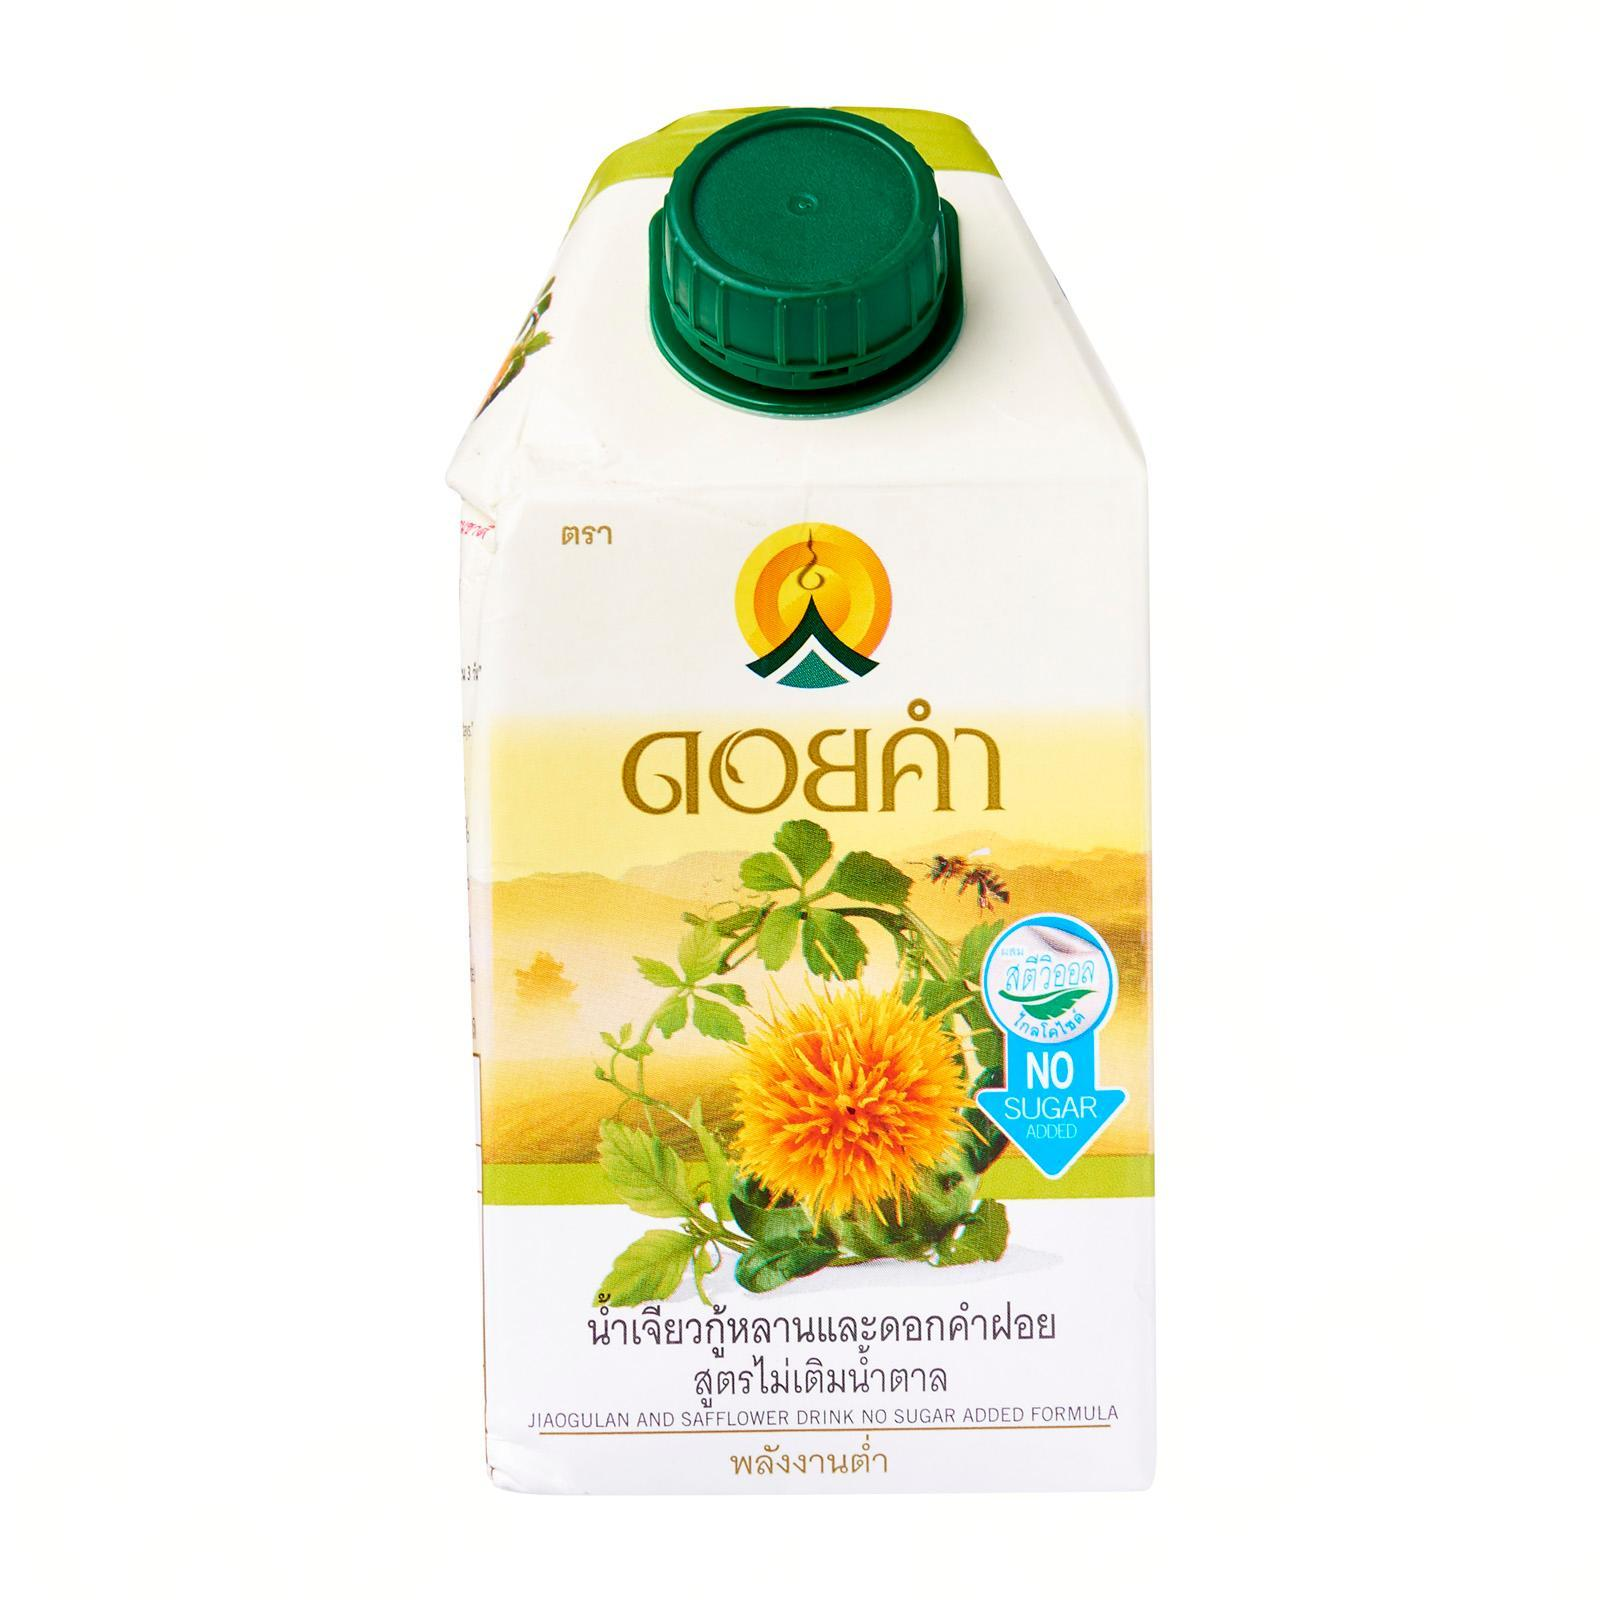 Doi Kham Jiaogulan And Safflower Drink No Sugar Added Formula. Not From Concentrate